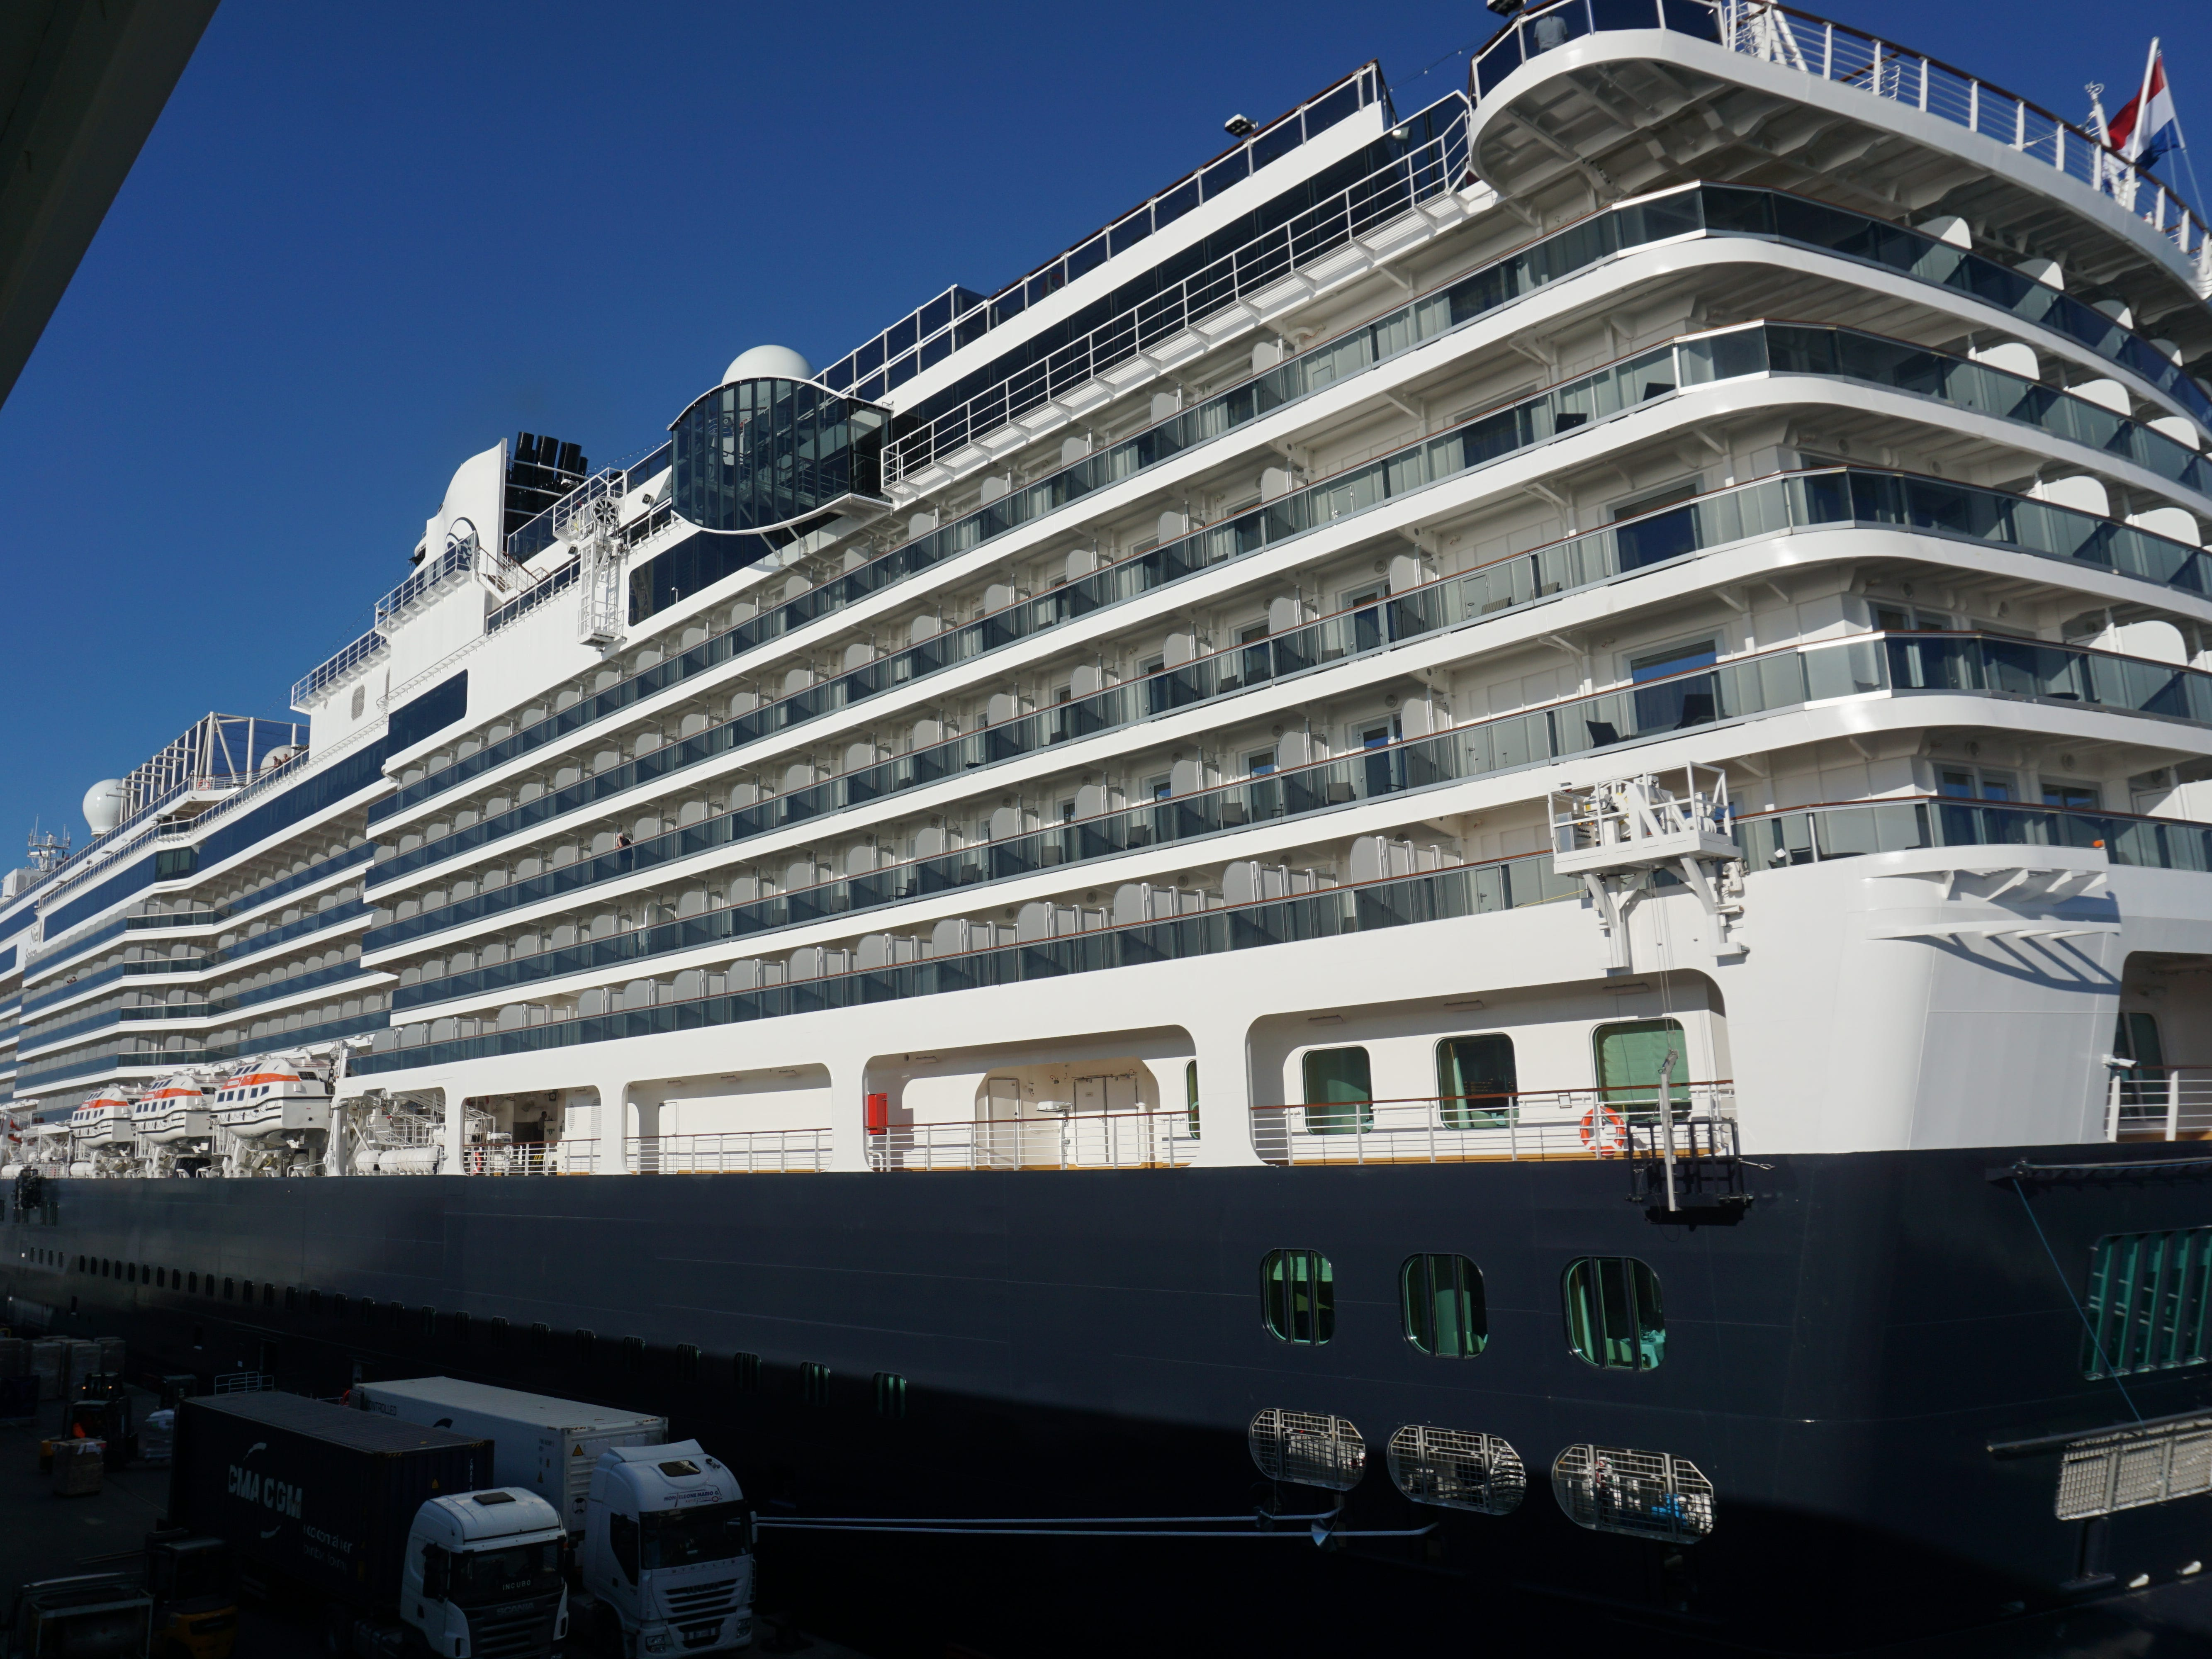 Like most new cruise ships, the Nieuw Statendam has a towering superstructure lined with stateroom balconies.